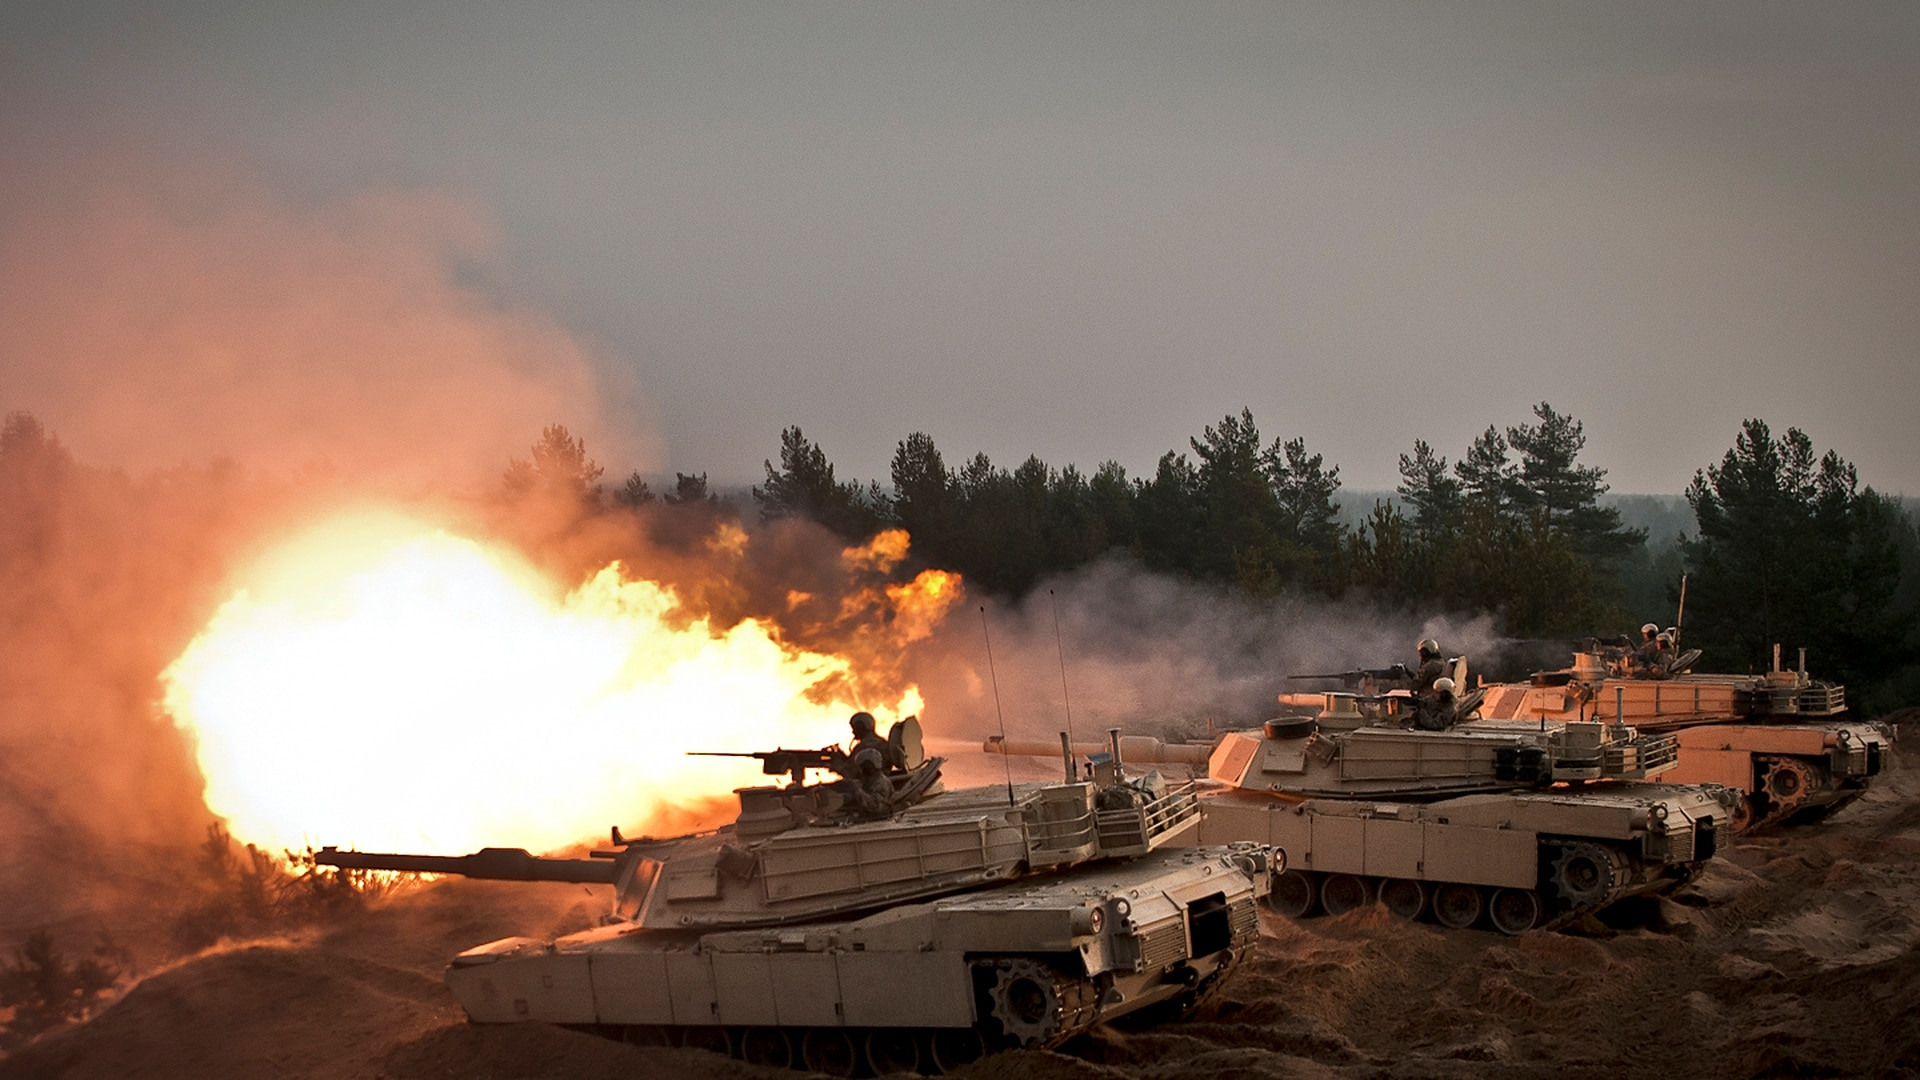 M1A2 Abrams tanks fire at the Adazi Training Area in Latvia. (Sgt. 1st Class Jeremy J. Fowler/Army)